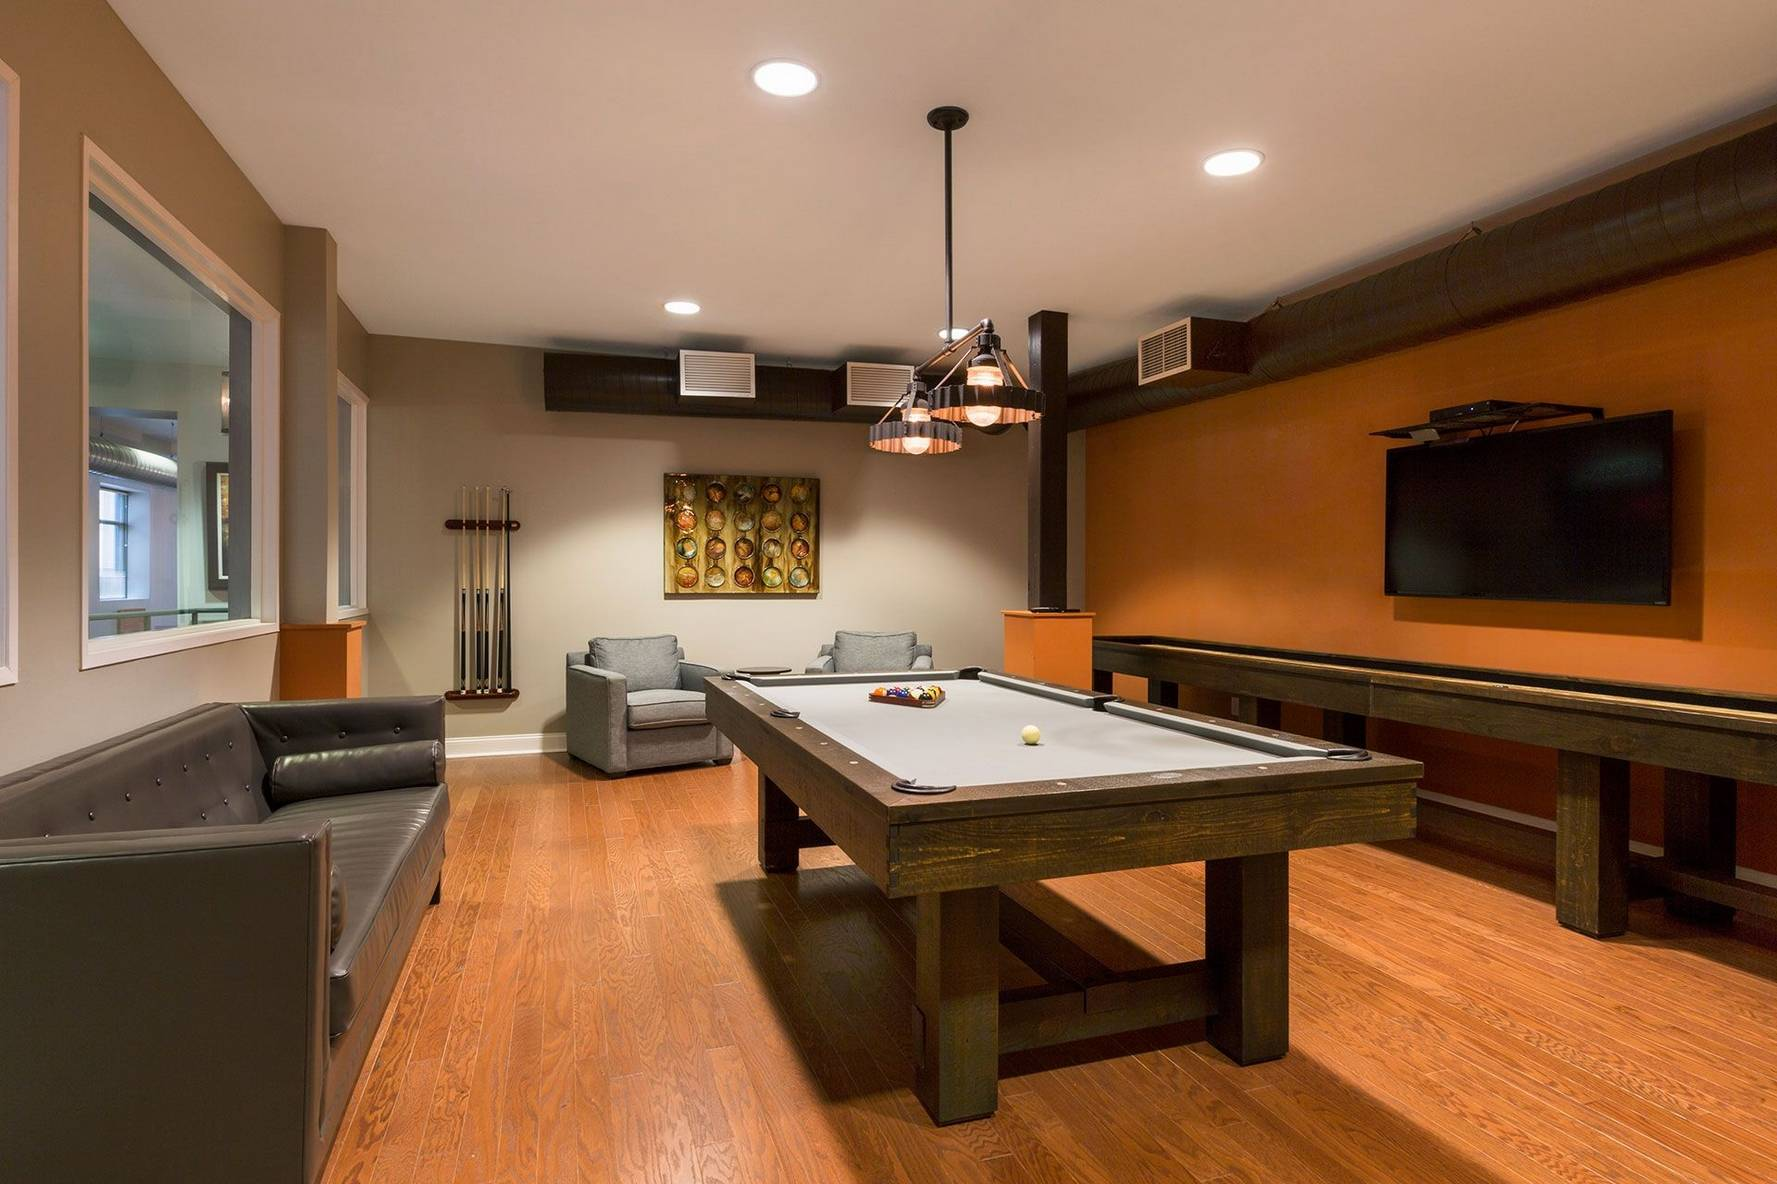 Game room with pool table and shuffleboard